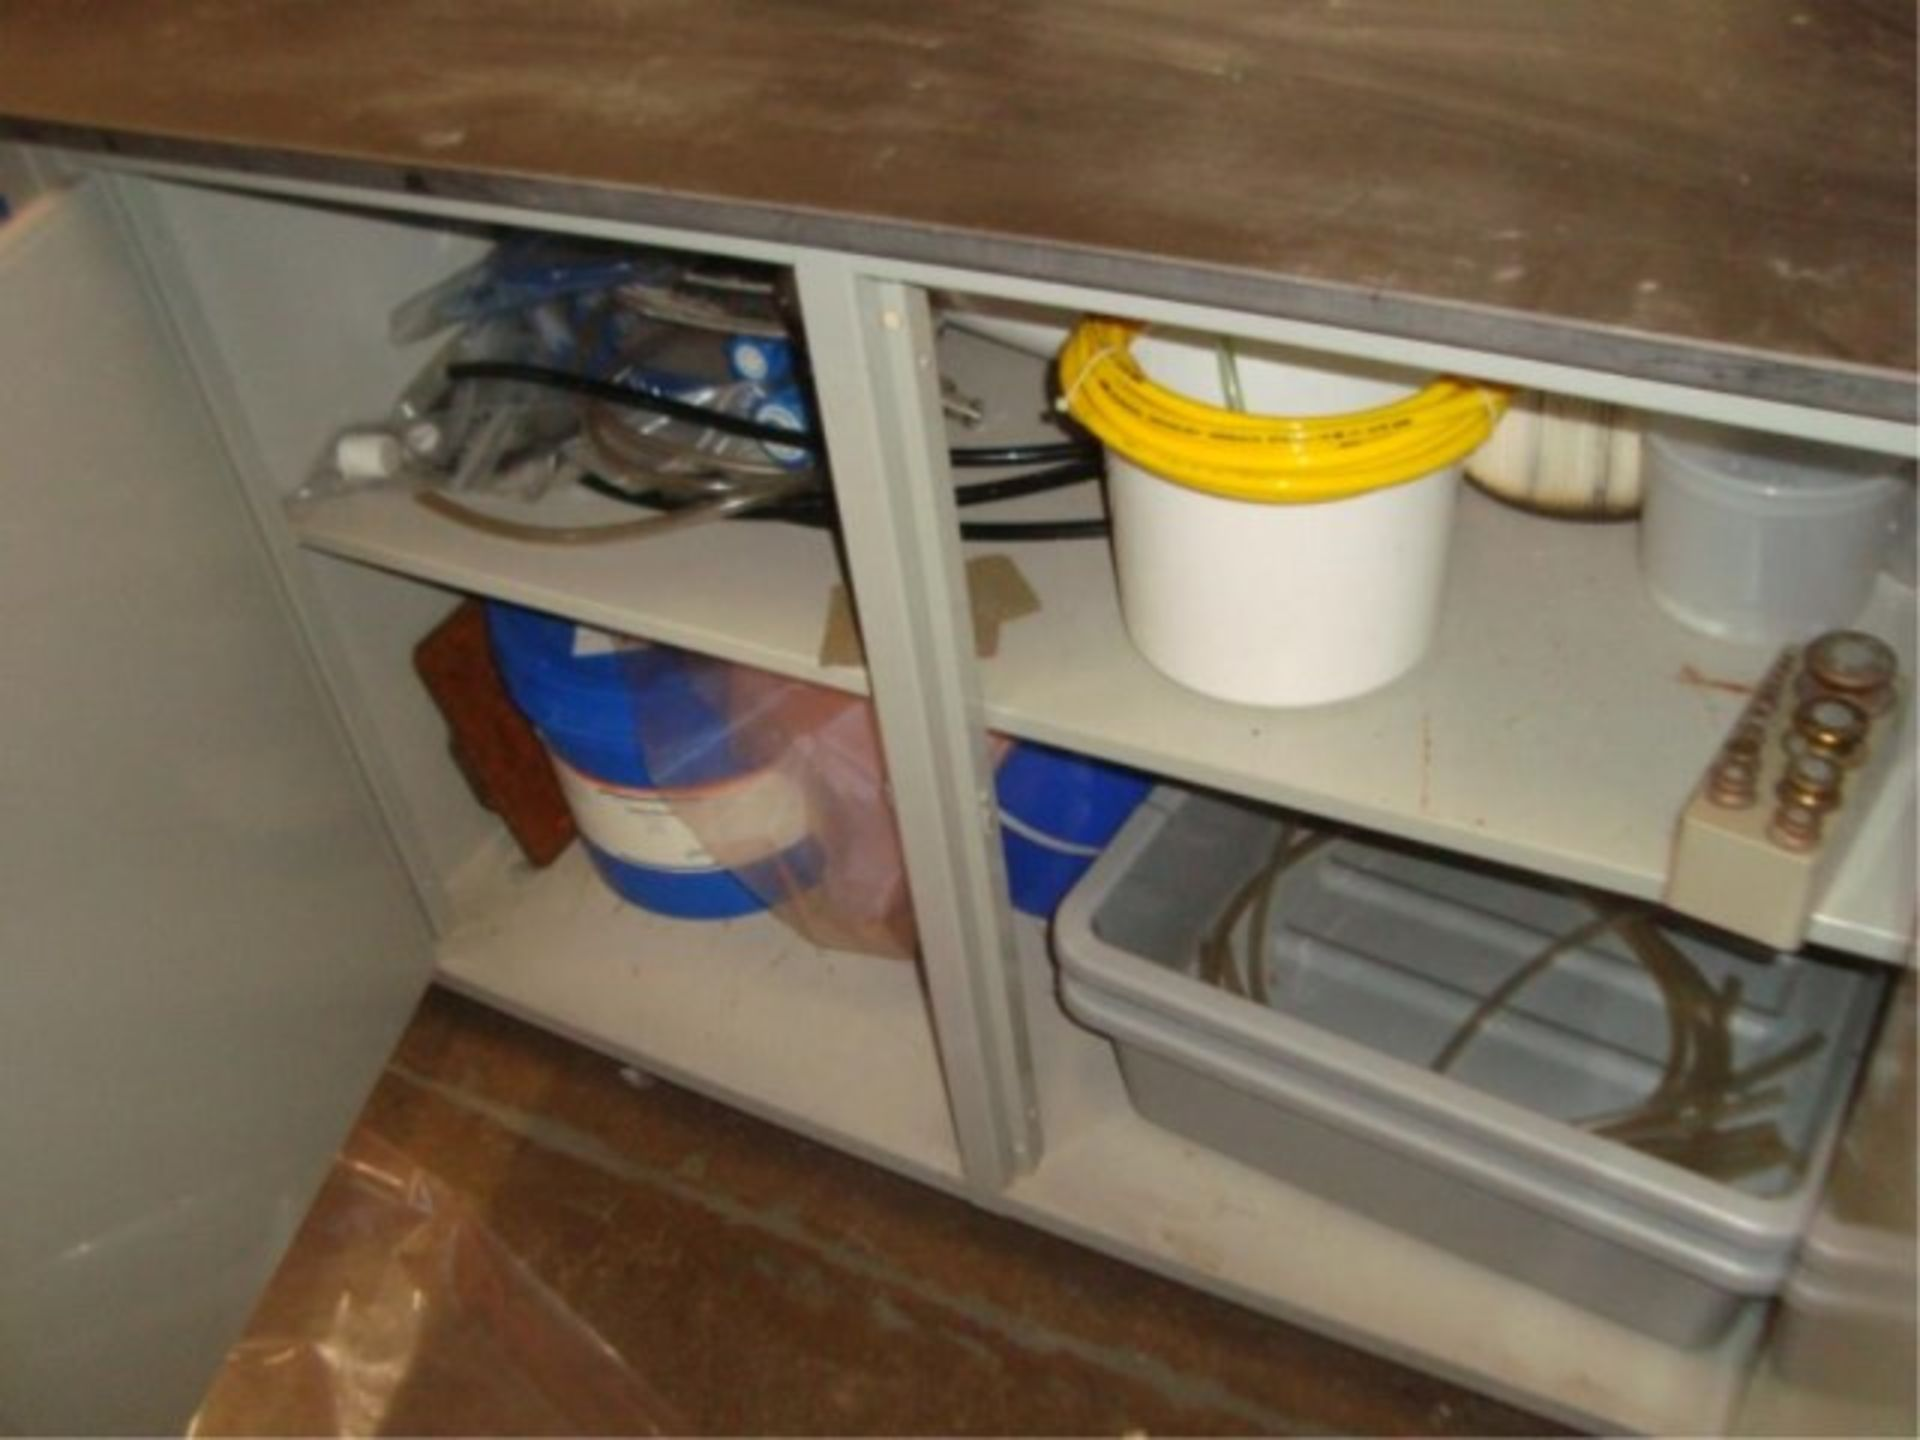 Lot 107 - Corrosion Resistant Lab Counter/Cabinets